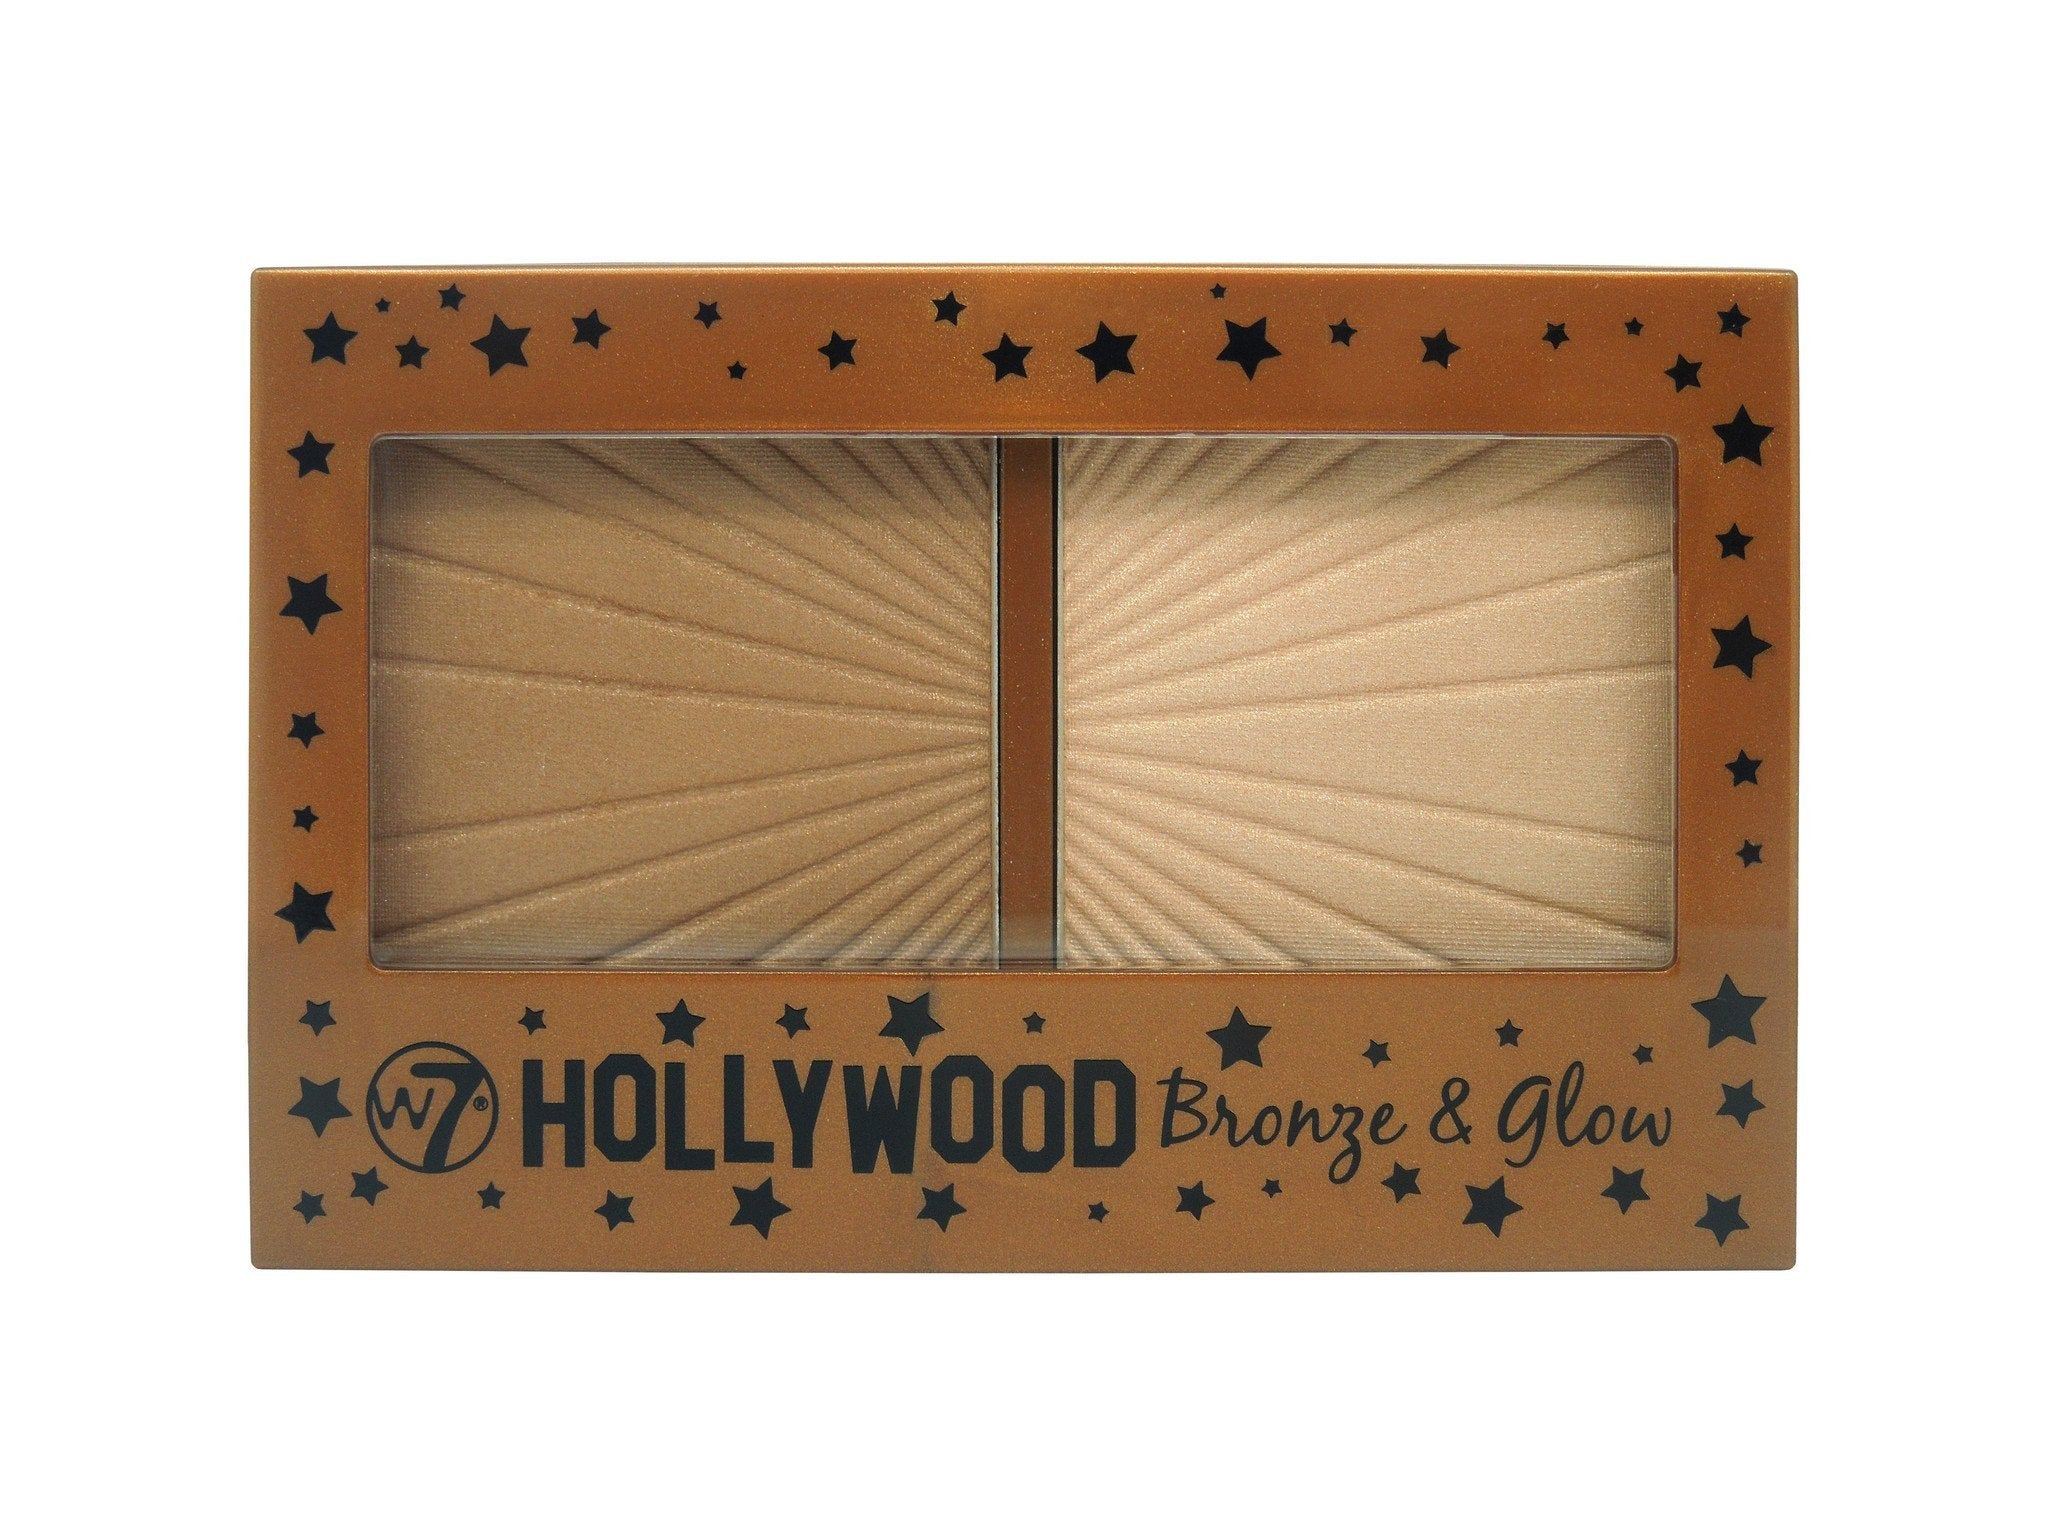 W7 Hollywood Bronze and Glow - districtglitz.com